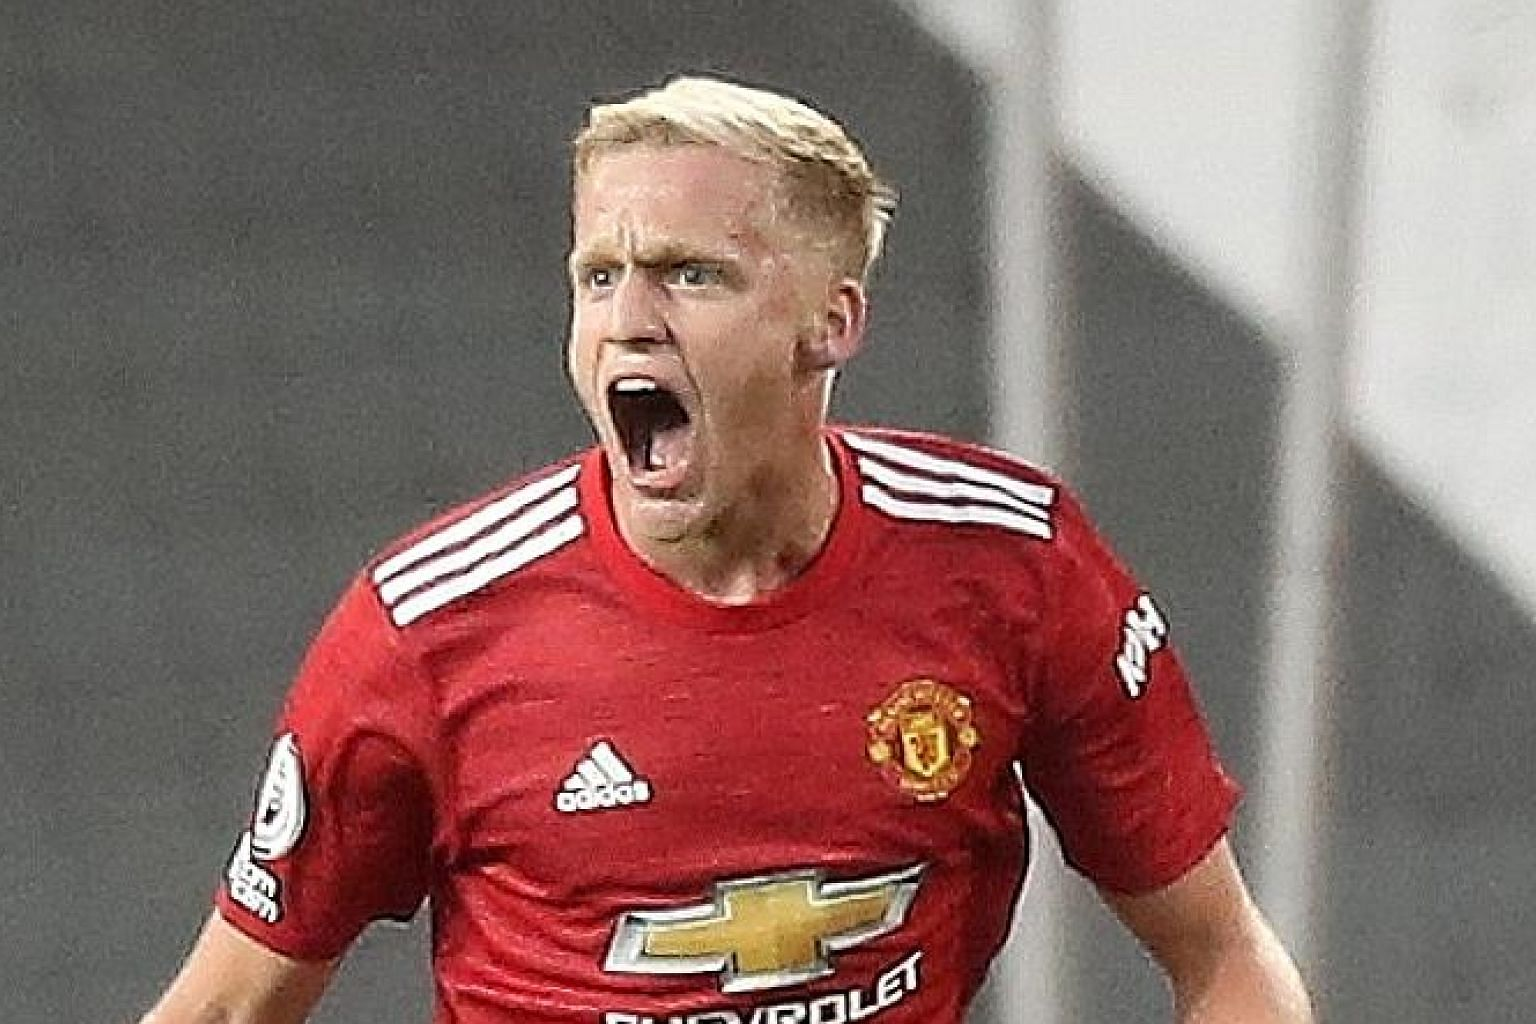 Donny van de Beek, who scored on his debut in the 3-1 loss to Crystal Palace, is Manchester United's only close-season signing so far. PHOTO: EPA-EFE